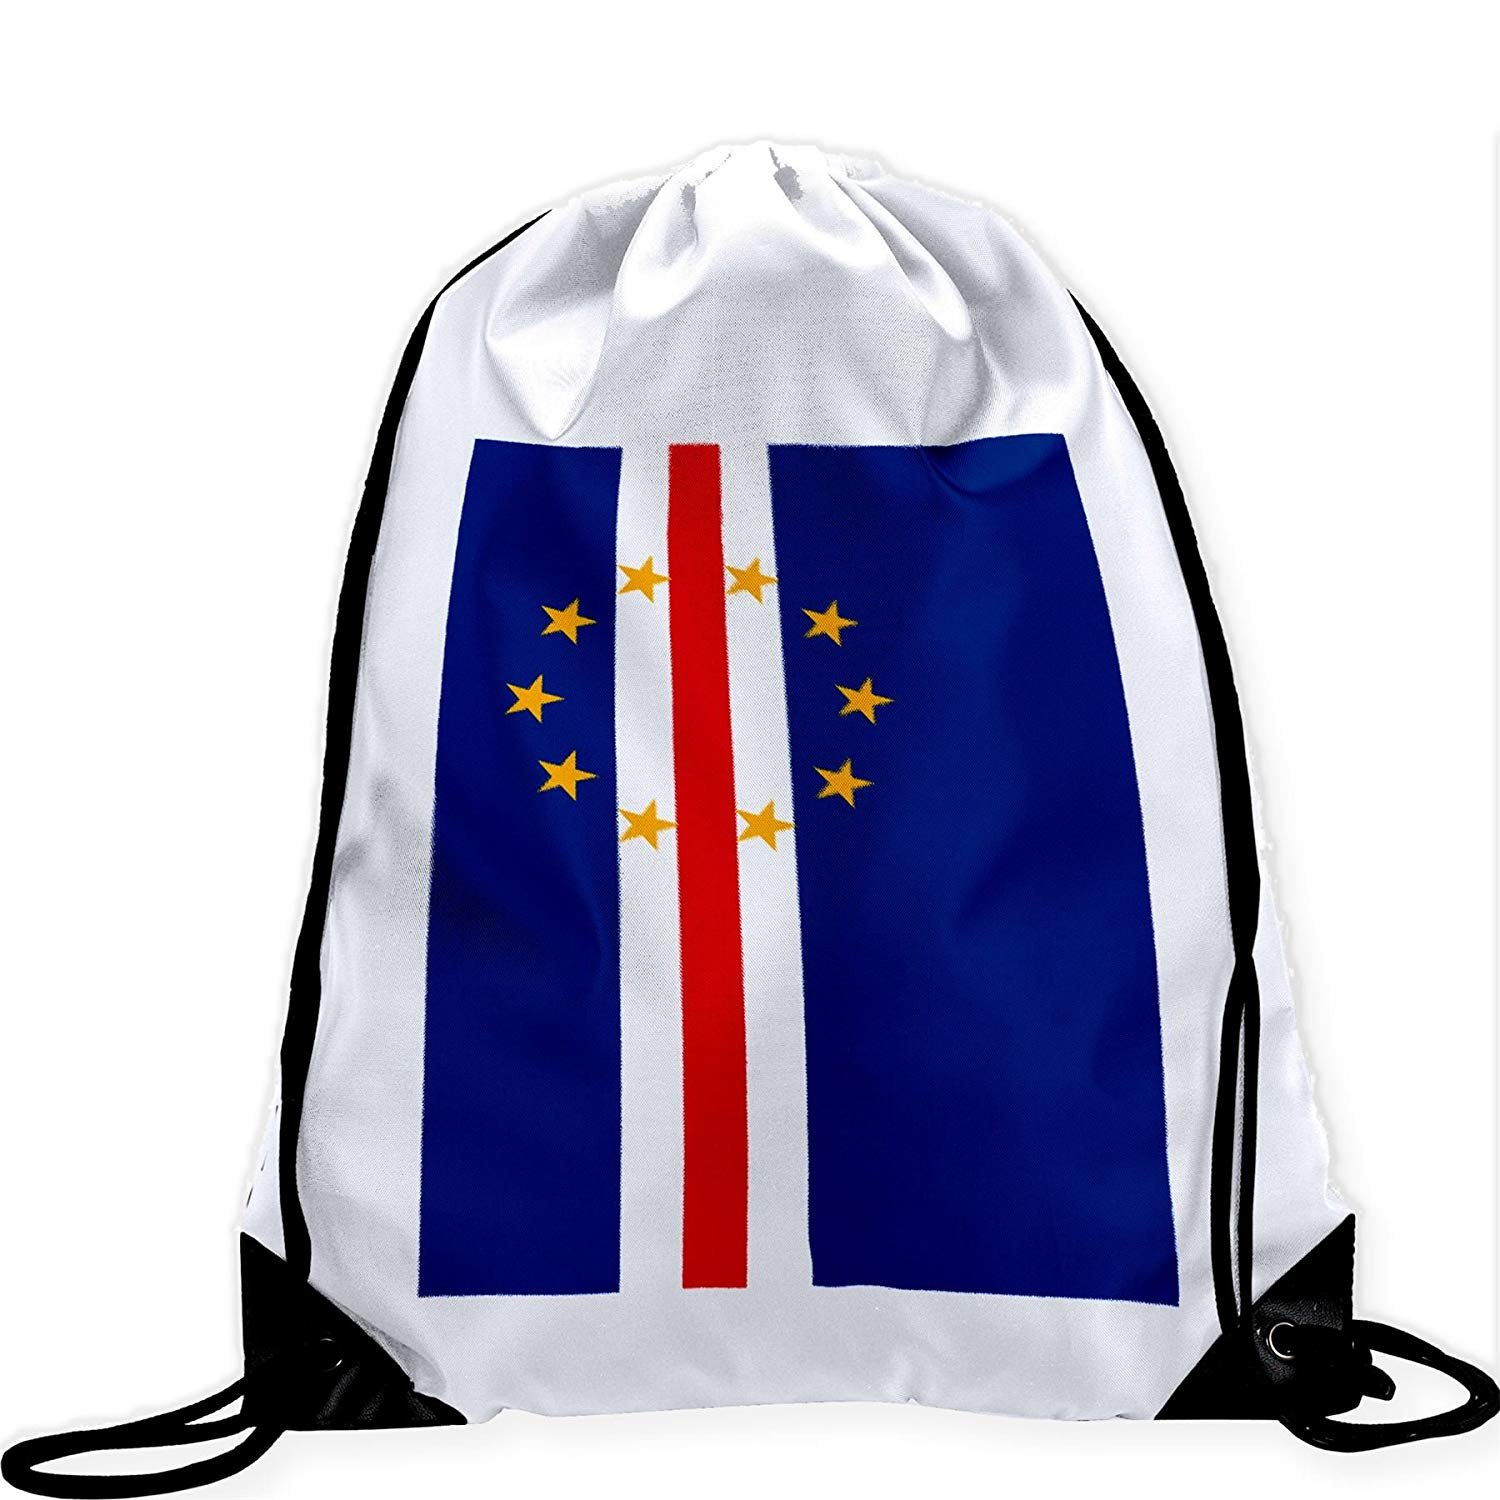 Large Drawstring Bag with Flag of Cape Verde - Many Designs - Long lasting vibrant image